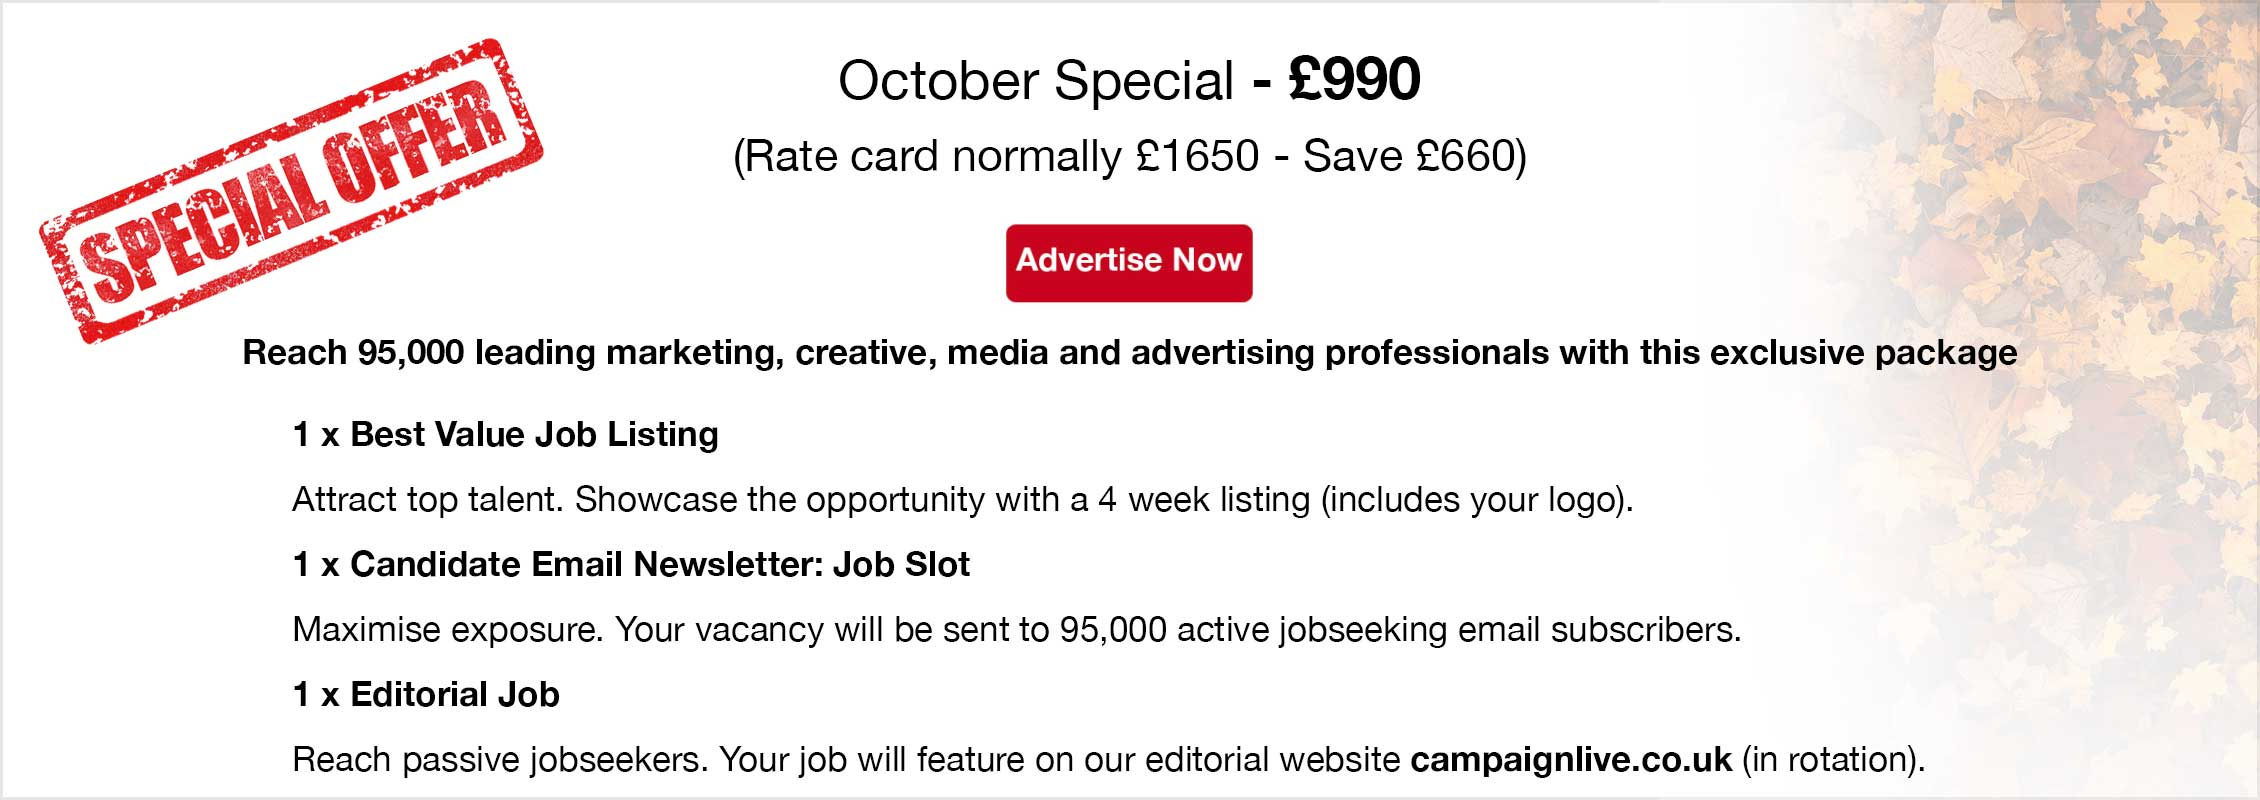 Special Offer. October Special - £990  (Rate card normally £1650 - Save £660). Advertise Now. Reach 95,000 leading marketing, creative, media and advertising professionals with this exclusive package. 1 x Best Value Job Listing. Attract top talent. Showcase the opportunity with a 4 week listing (includes your logo). 1 x Candidate Email Newsletter: Job Slot. Maximise exposure. Your vacancy will be sent to 95,000 active jobseeking email subscribers. 1 x Editorial Job. Reach passive jobseekers. Your job will feature on our editorial website campaignlive.co.uk (in rotation).